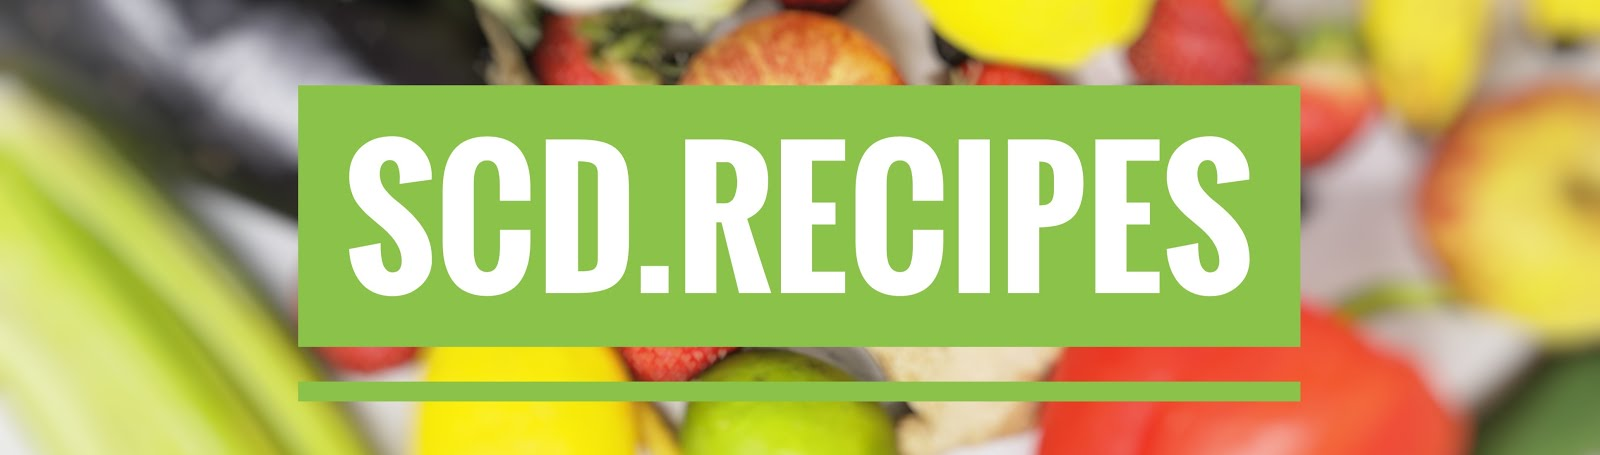 SCD.recipes